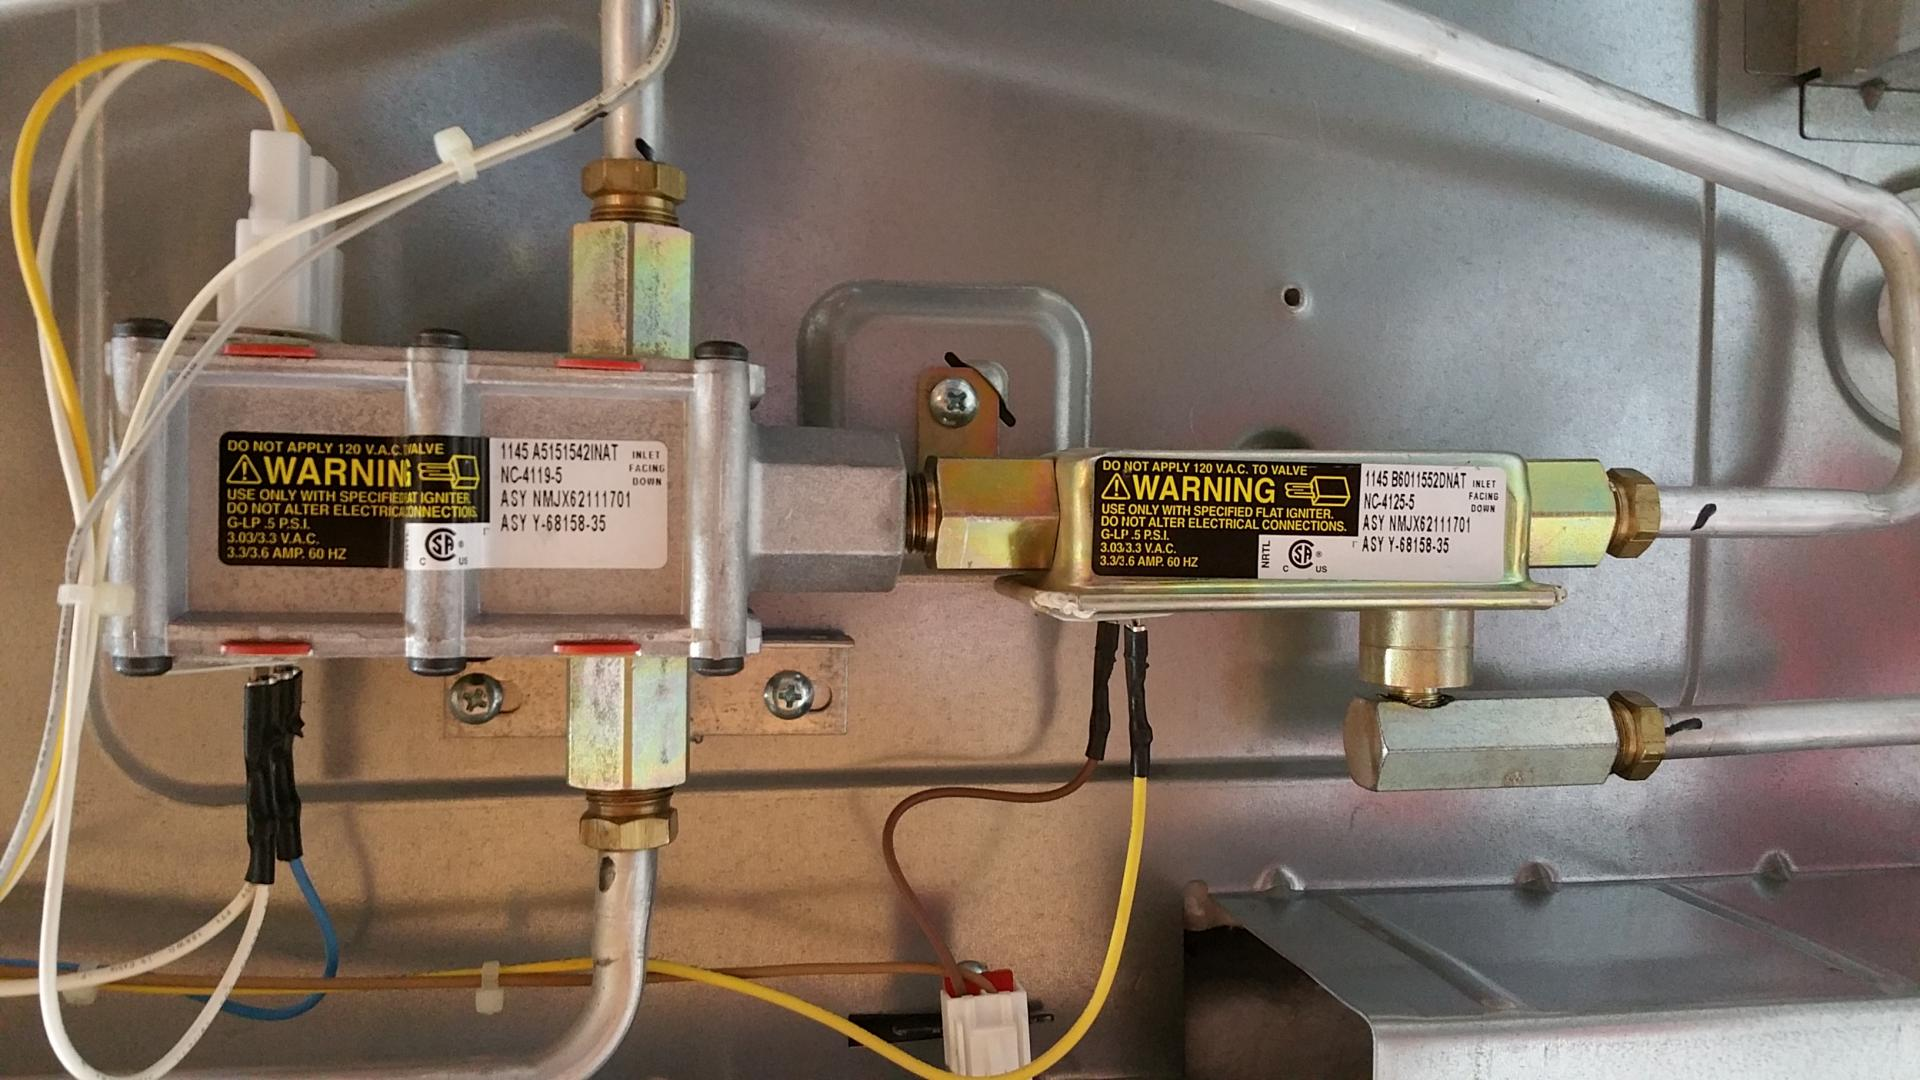 Fixed Ldg3016st F9 Code On Upper Oven Frigidaire Wiring Diagram Click Image For Larger Version Name 20180228 150537 Copy Views 83